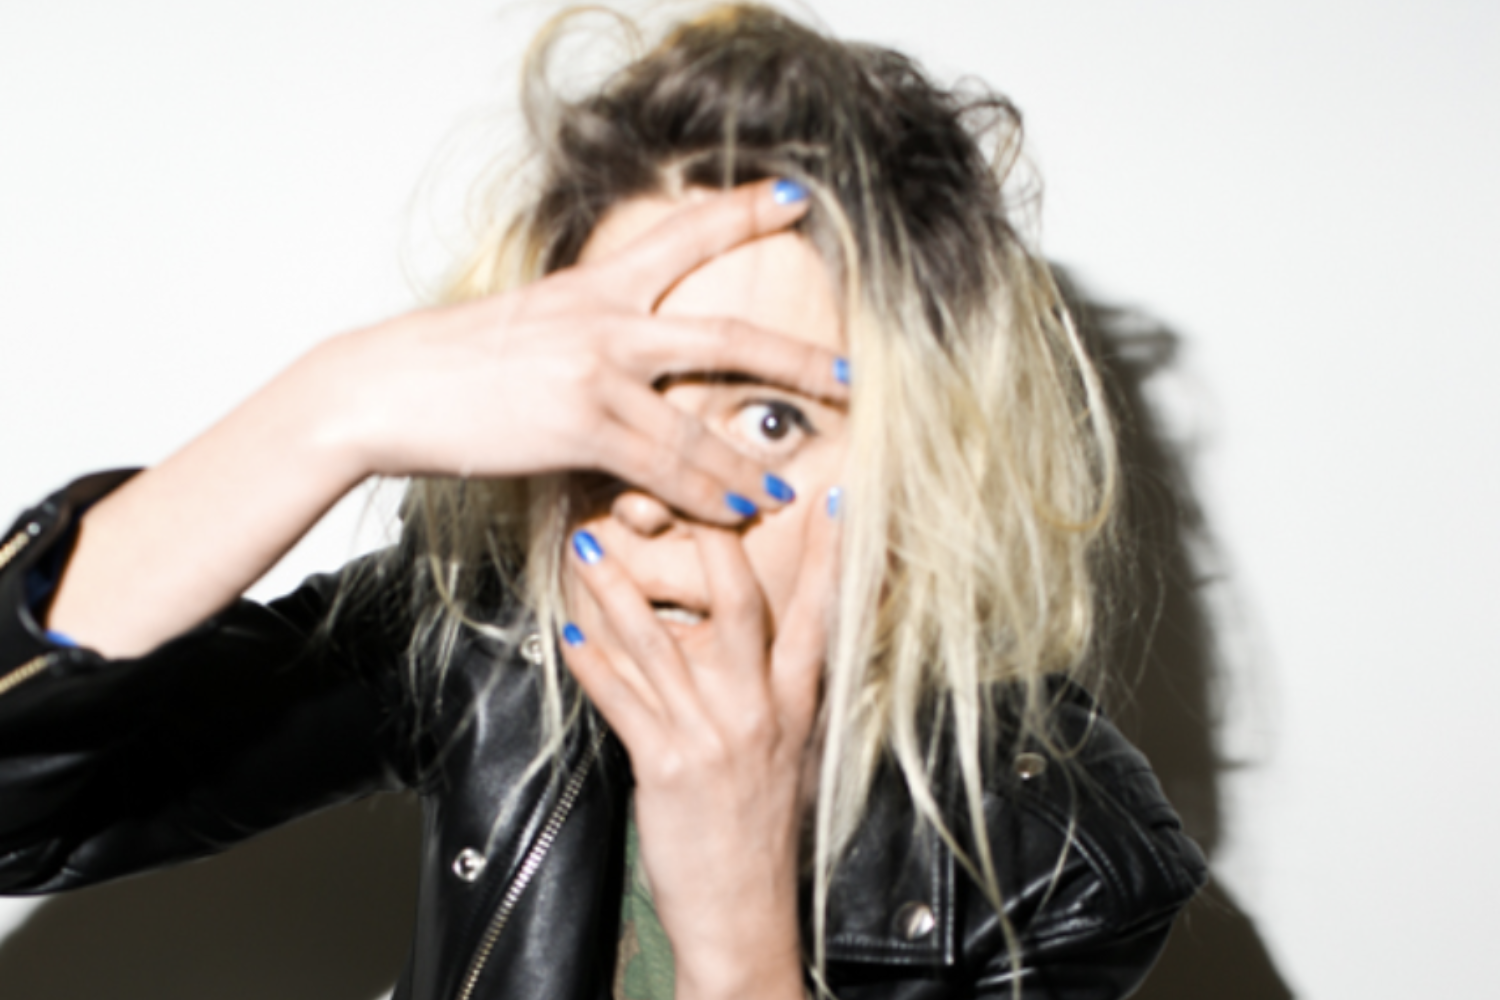 Alison Mosshart reveals second solo song 'It Ain't Water'